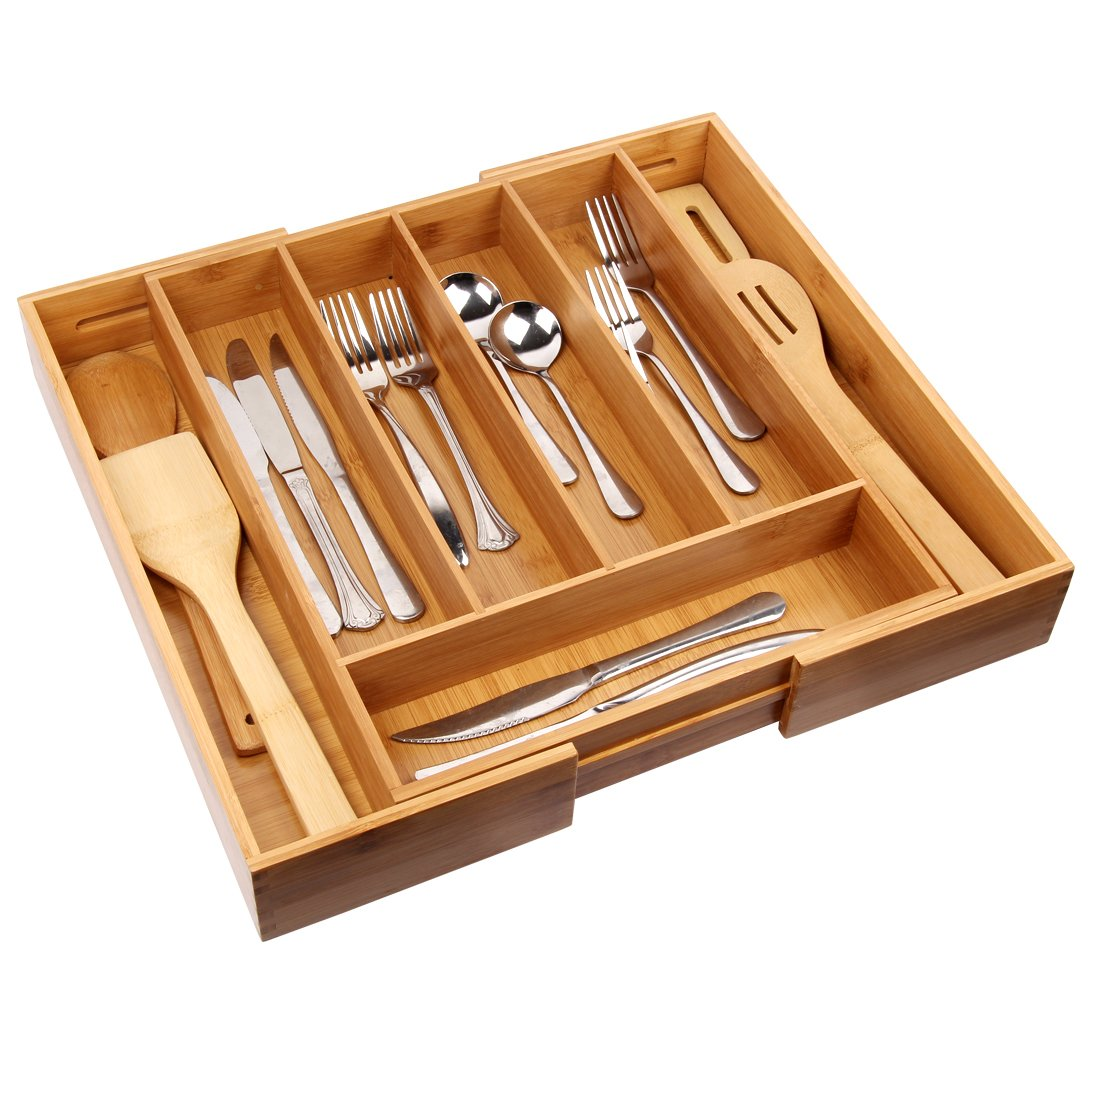 Cutlery Tray with 7 Compartments Flatware Organizer Used for Drawer Organizer and Divider,Perfect Bamboo Holder for Utensils,Flatware,Silverware by Artmeer by Artmeer